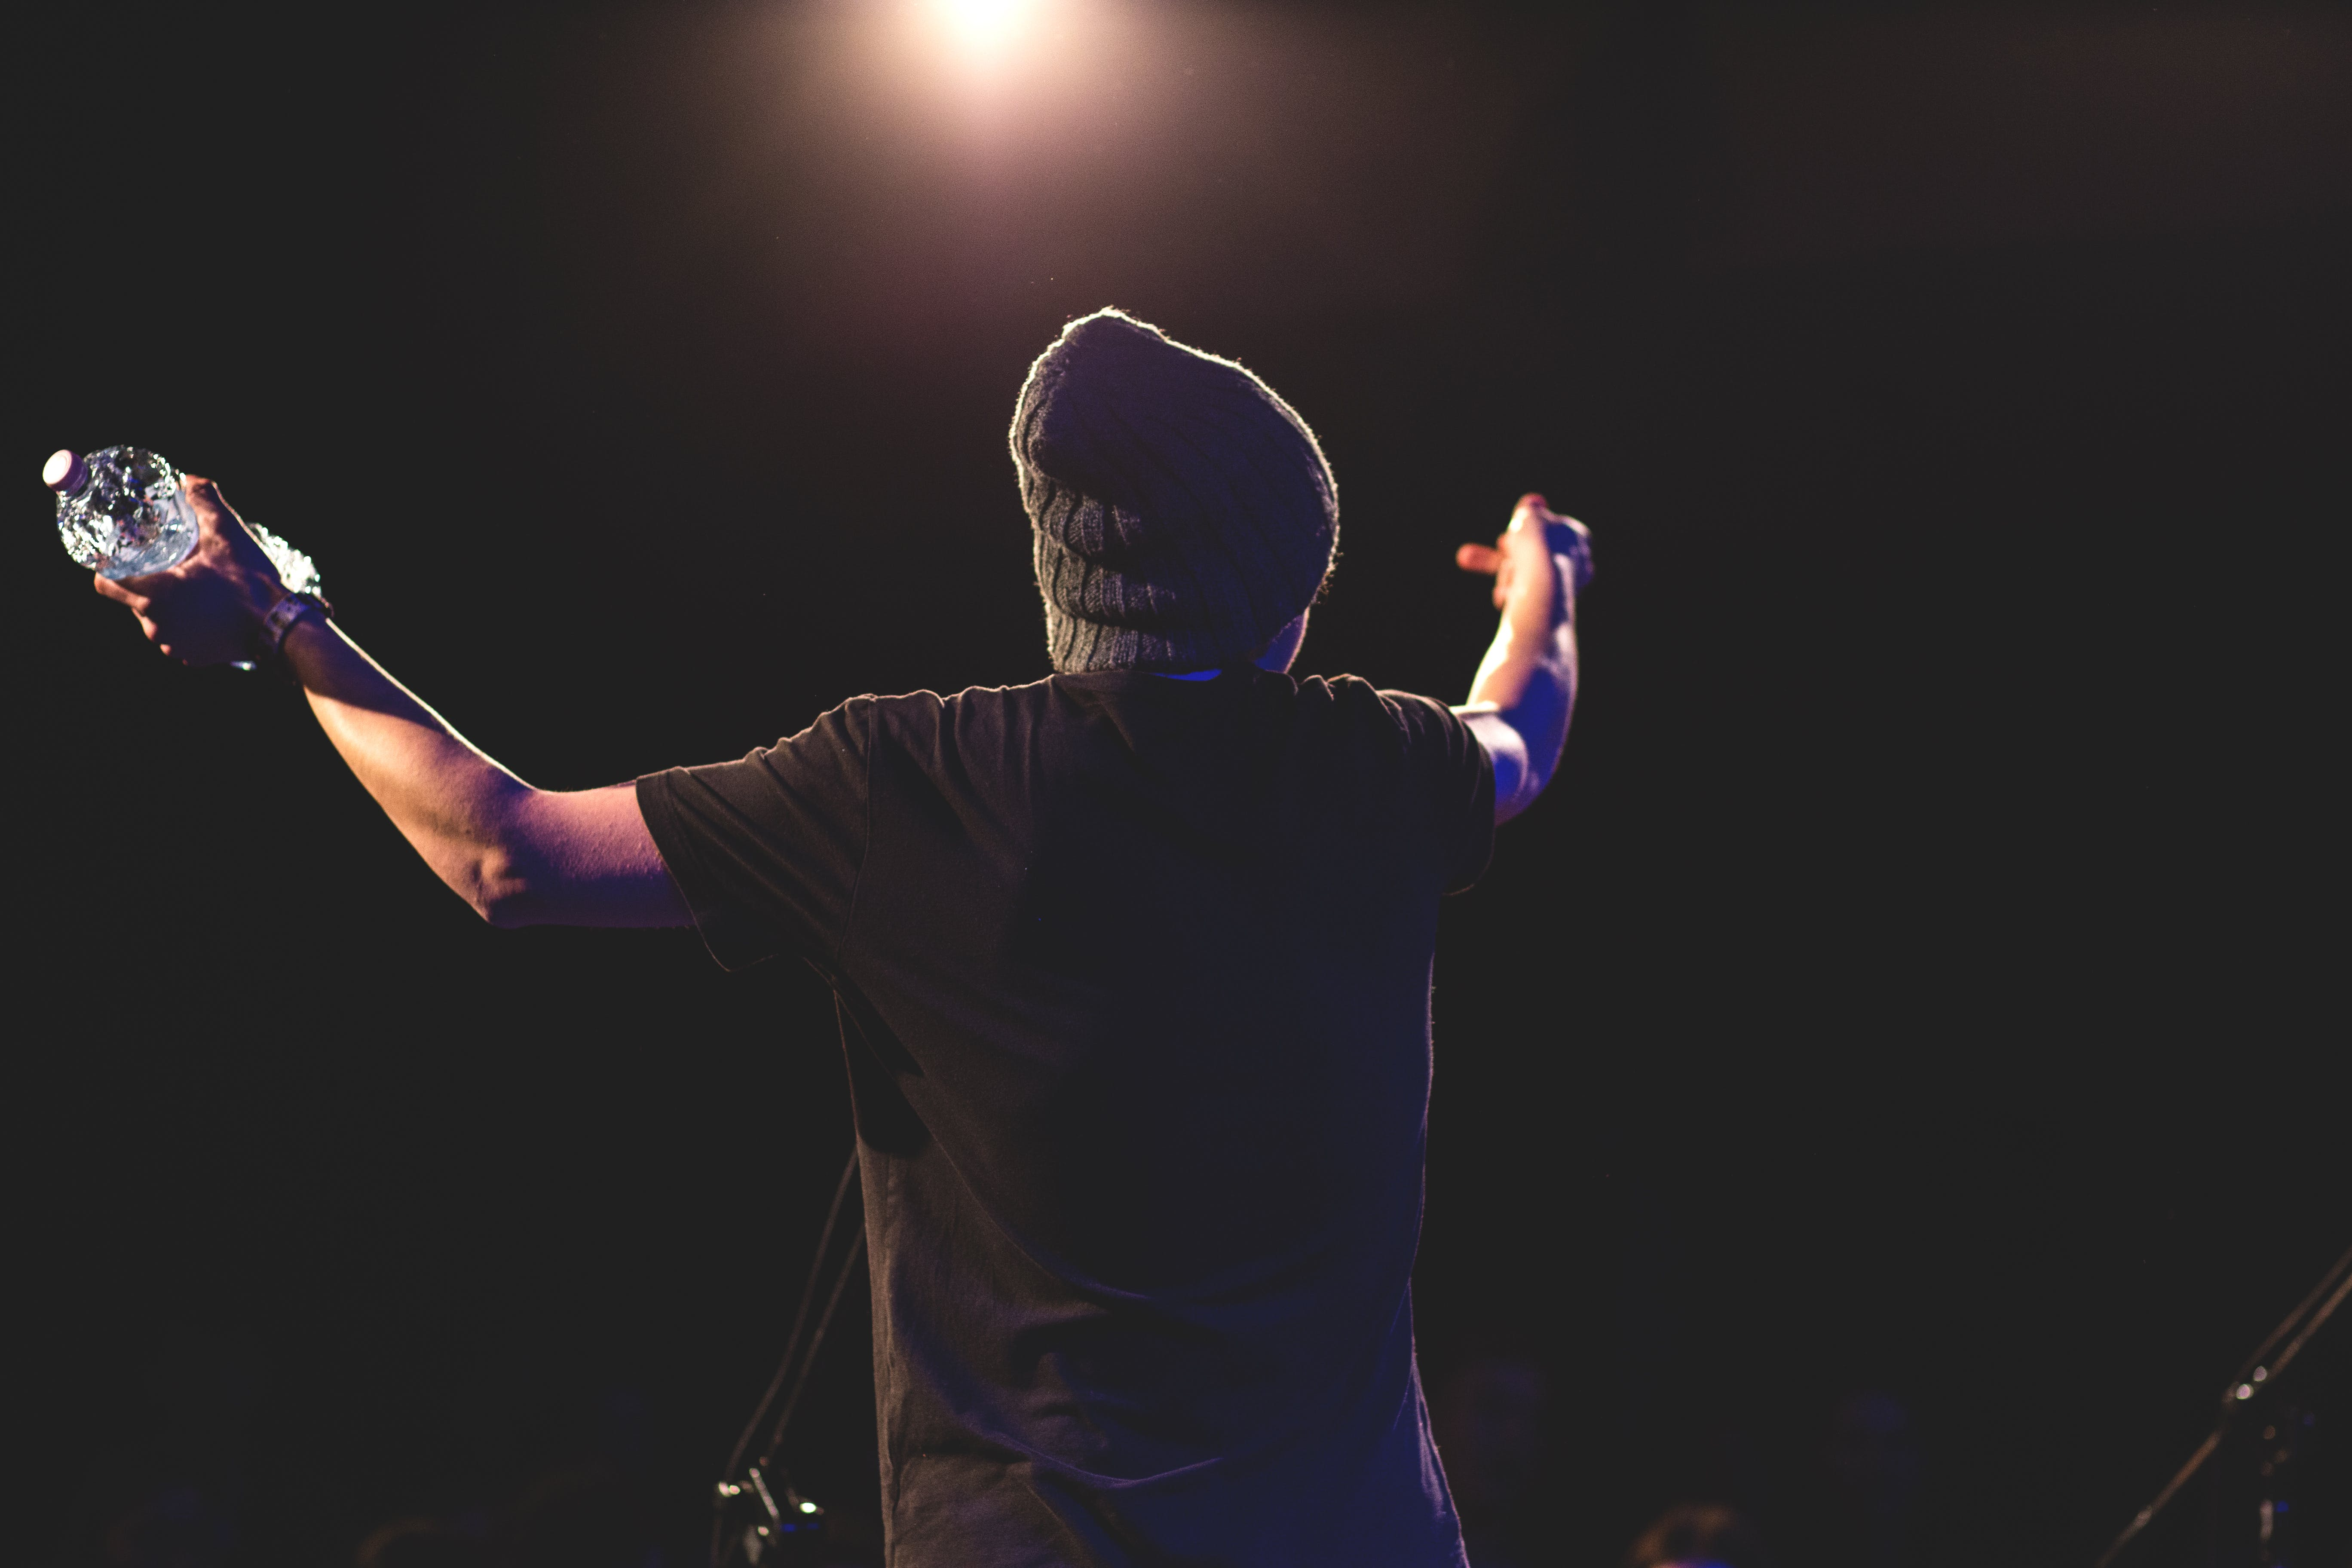 Man in Black T Shirt Standing While Spreading His Arms Facing Light